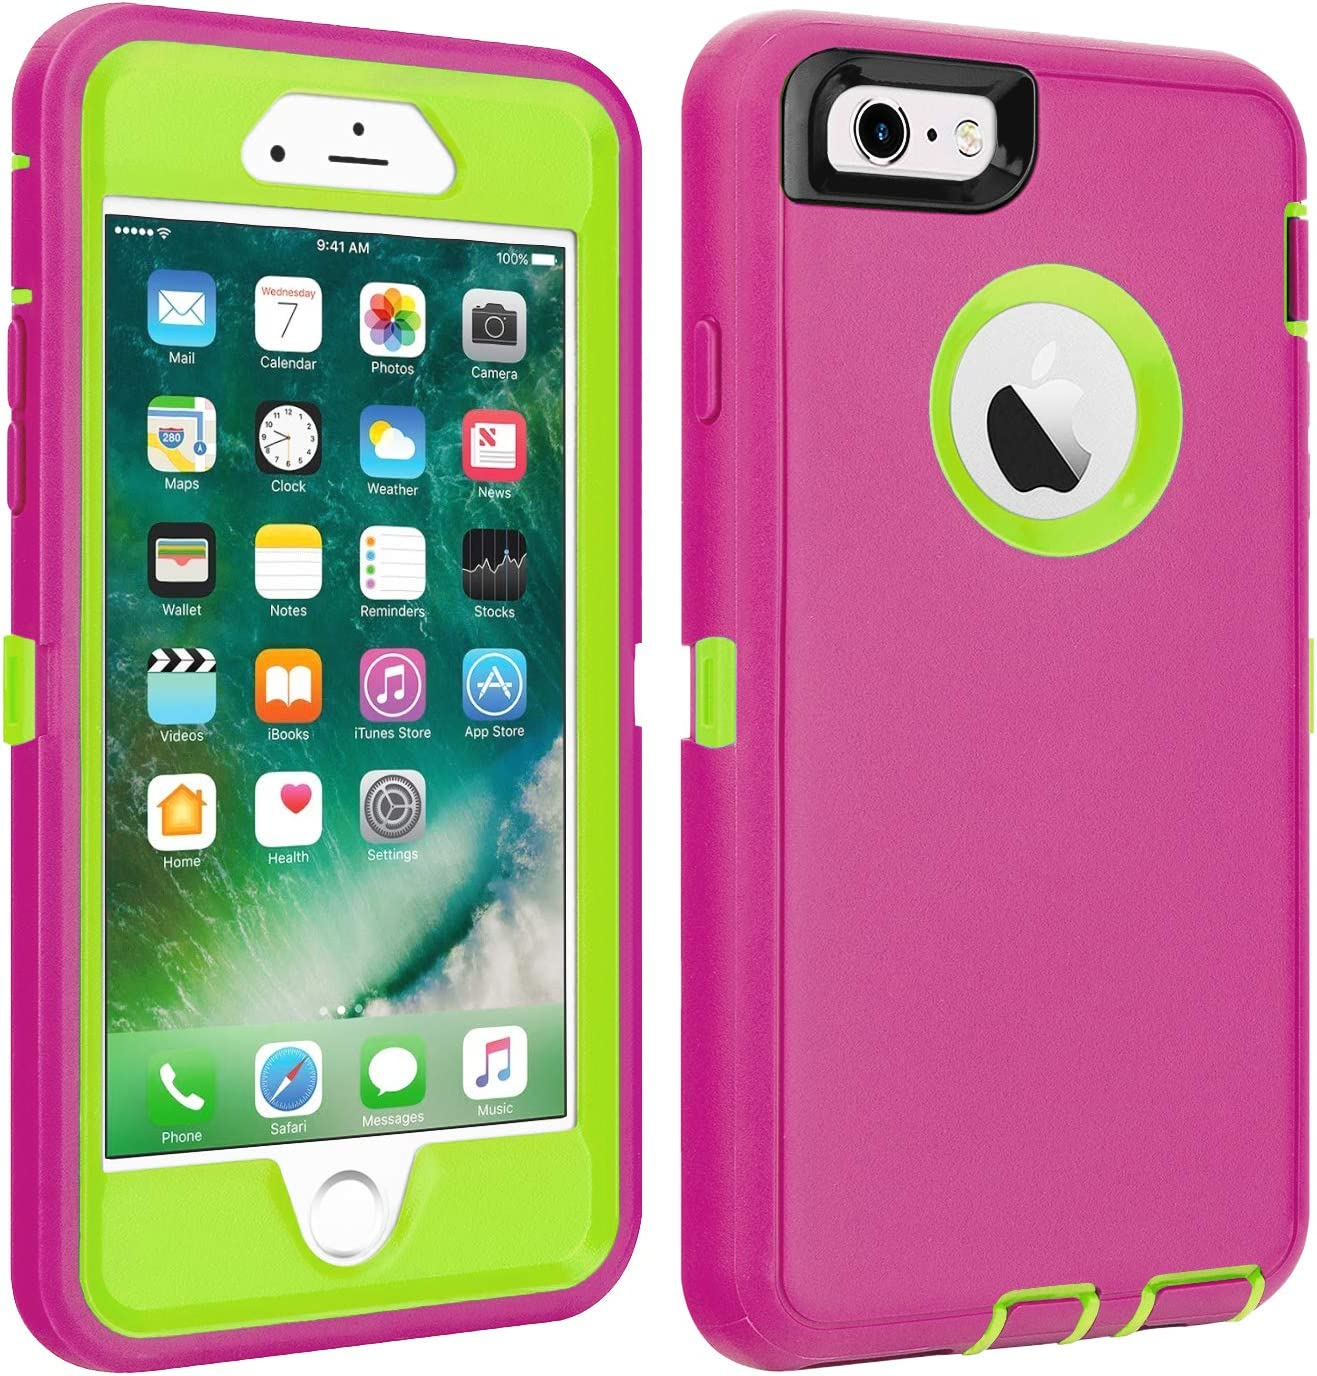 """iPhone 6/6S Case Shockproof High Impact Tough Rubber Rugged Hybrid Case Silicone Triple Protective Anti-Shock Shatter-Resistant Mobile Phone for iPhone 6/6S 4.7""""(Pink)"""